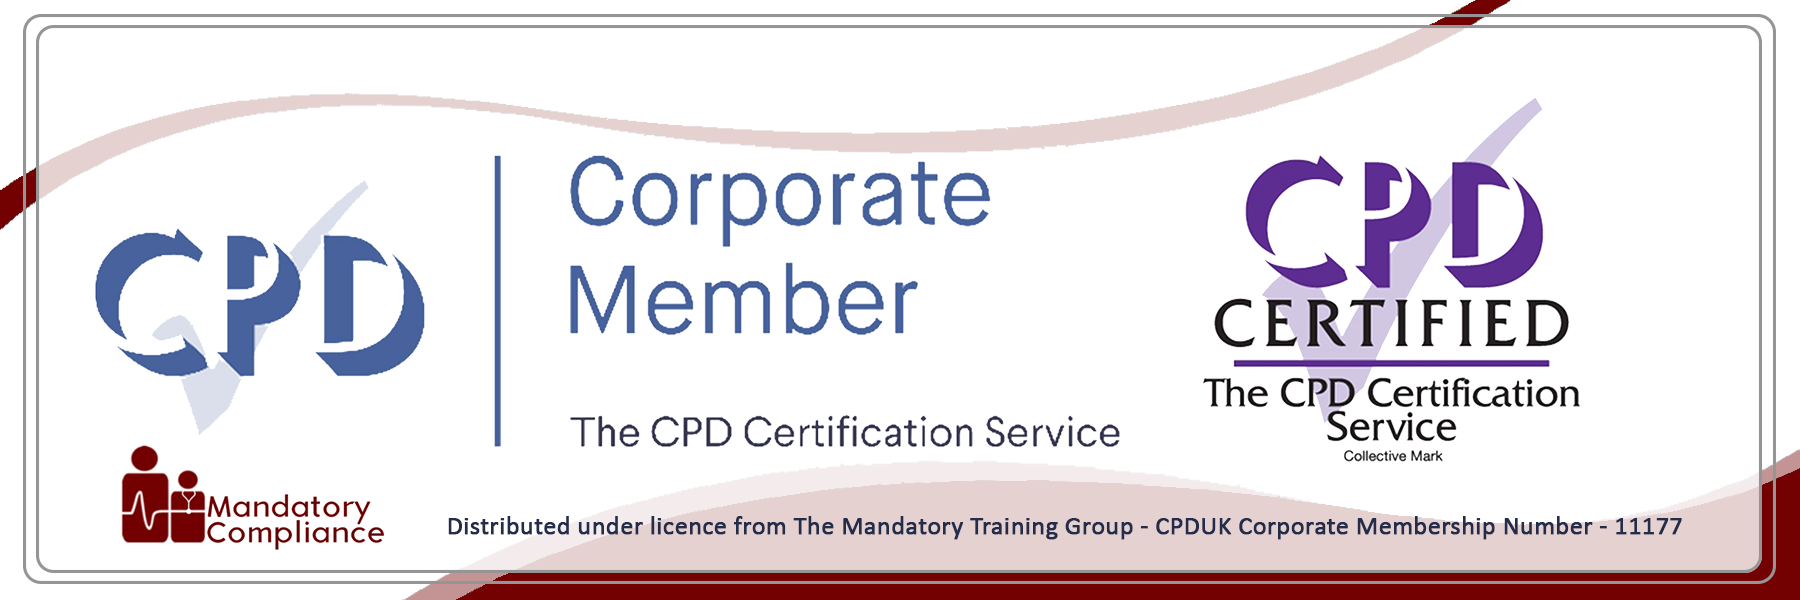 Social Media in the Workplace - Online Training Course - CPDUK Accredited - Mandatory Compliance UK -